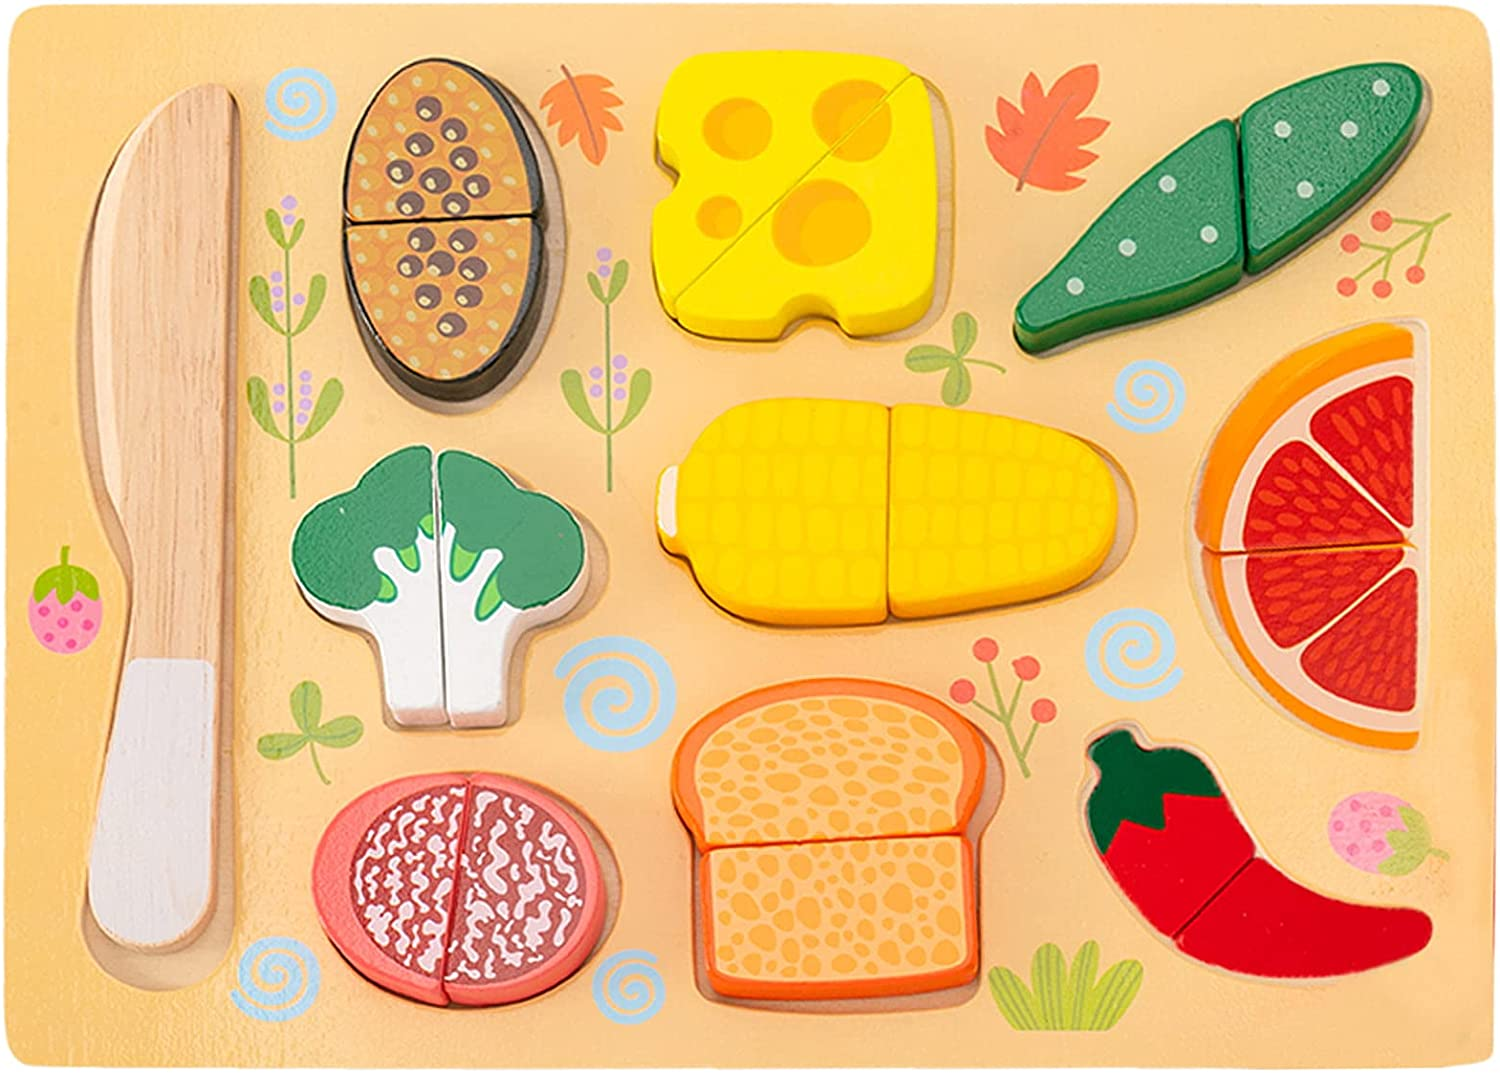 CUCOS Wooden Cutting Puzzles for Kids Ages 1-5 Years Old, Food Toddler Puzzles, Learning Toys Educational Gift for Girls and Boys